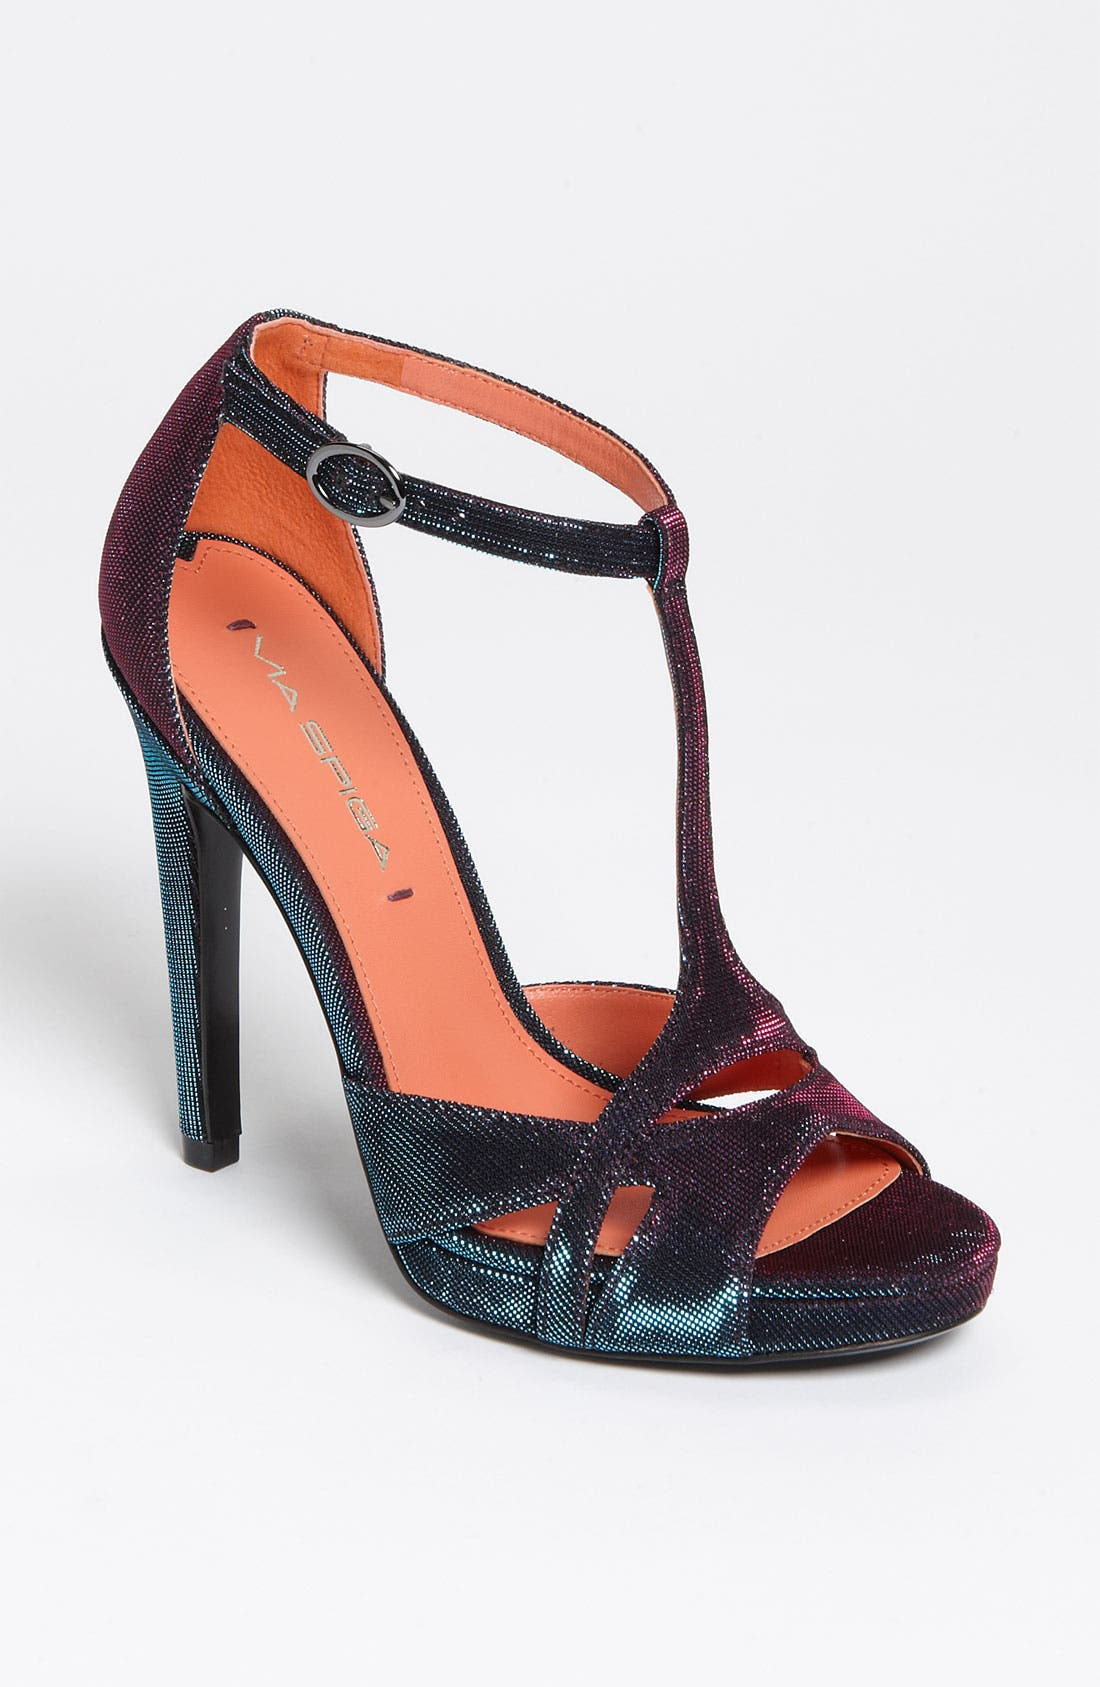 Alternate Image 1 Selected - Via Spiga 'Pamela' Sandal